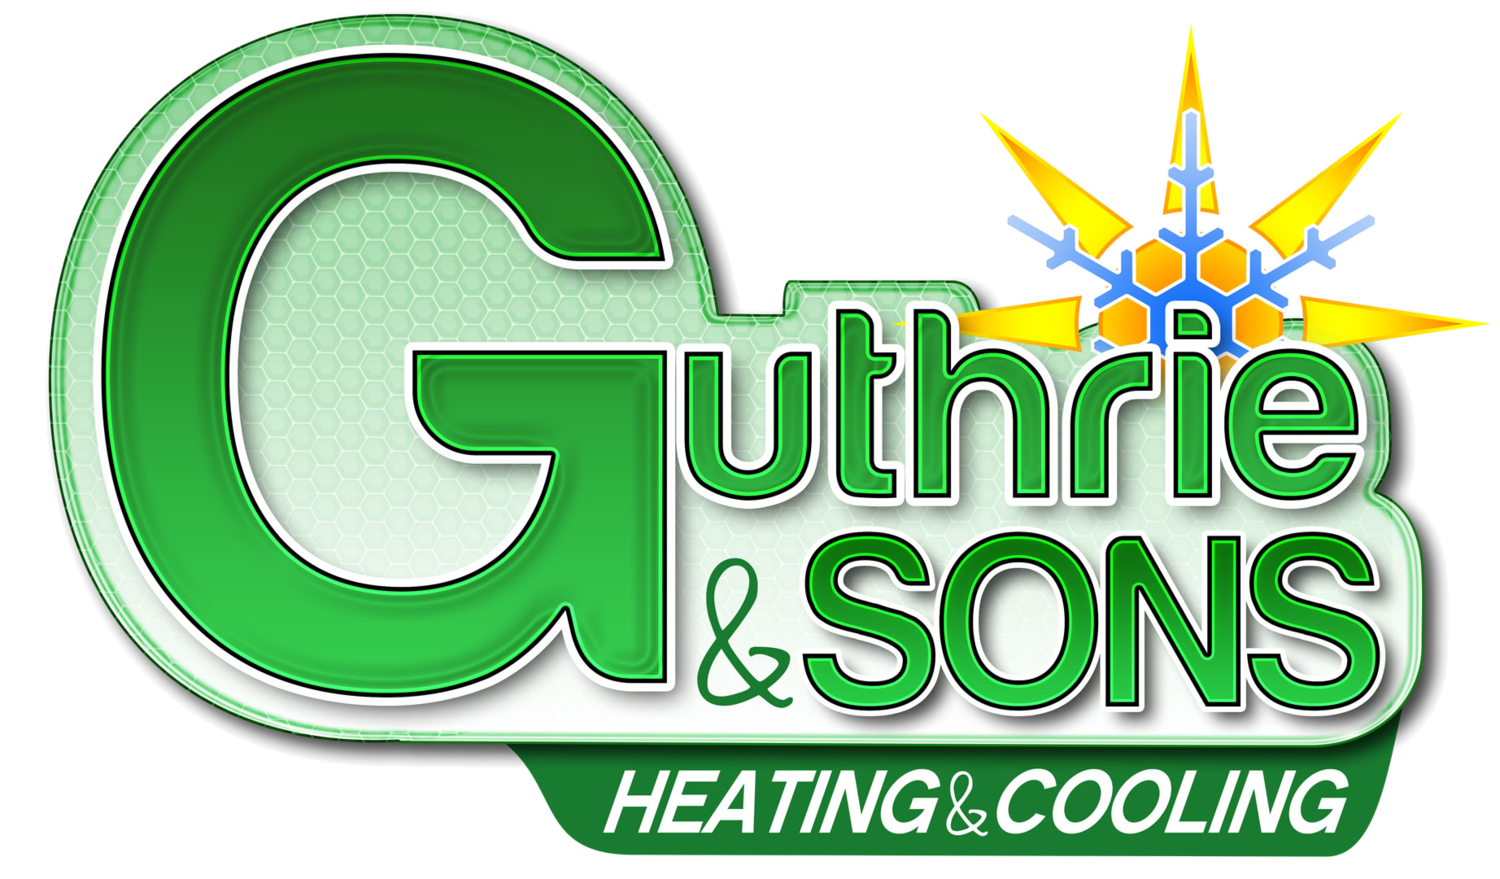 Guthrie & Sons | San Diego Air Conditioning Heating HVAC Service Repair